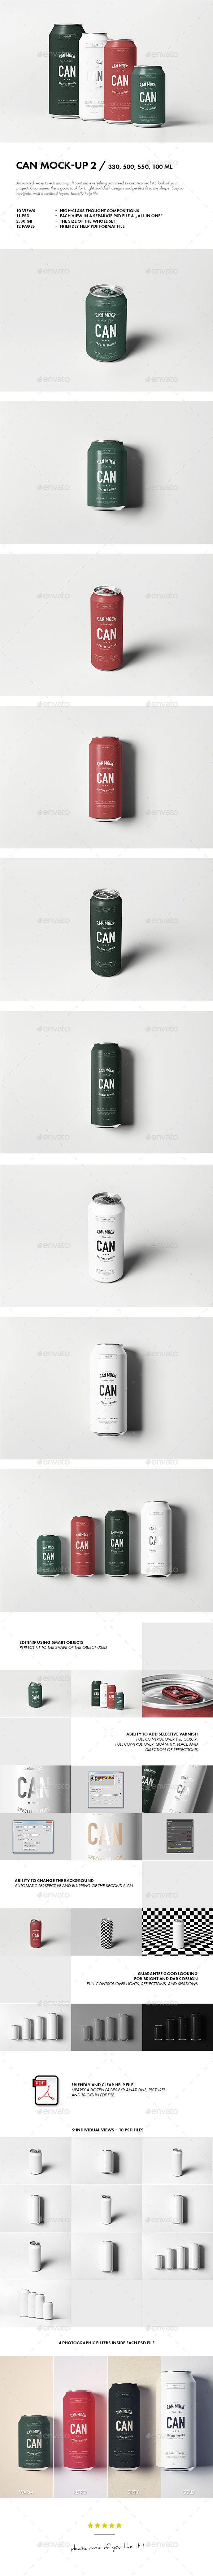 Can Mock-up 2 - Food and Drink Packaging #psd #mockup #can #beverage #packaging